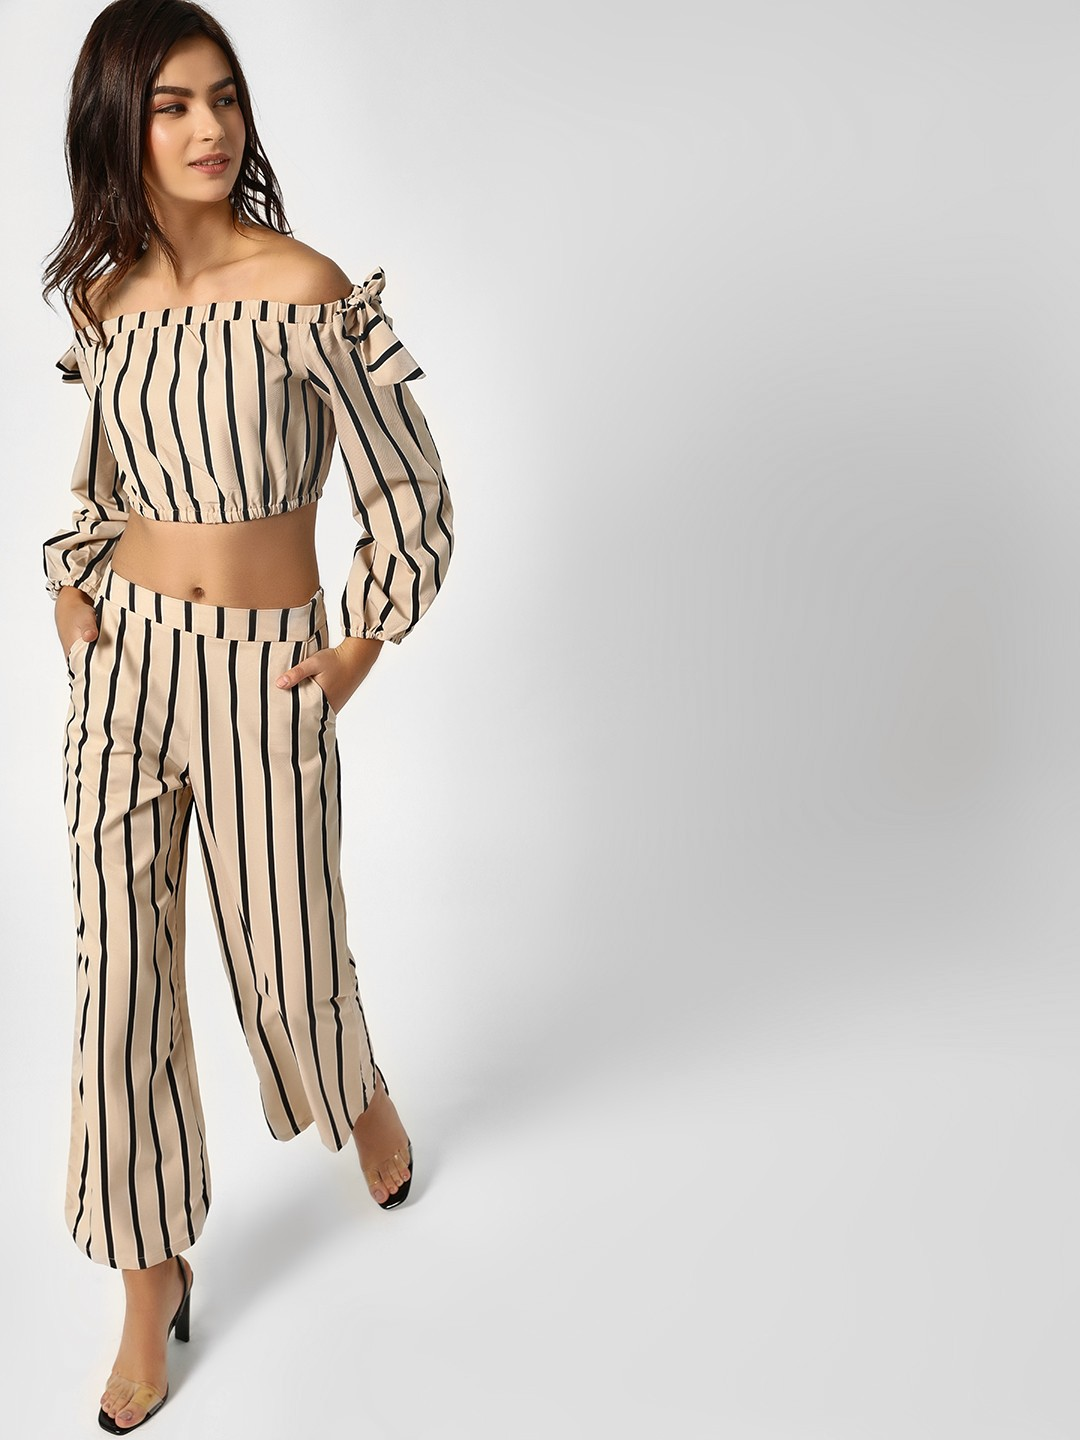 Moguland Pink Bardot Striped Co-ord Set 1